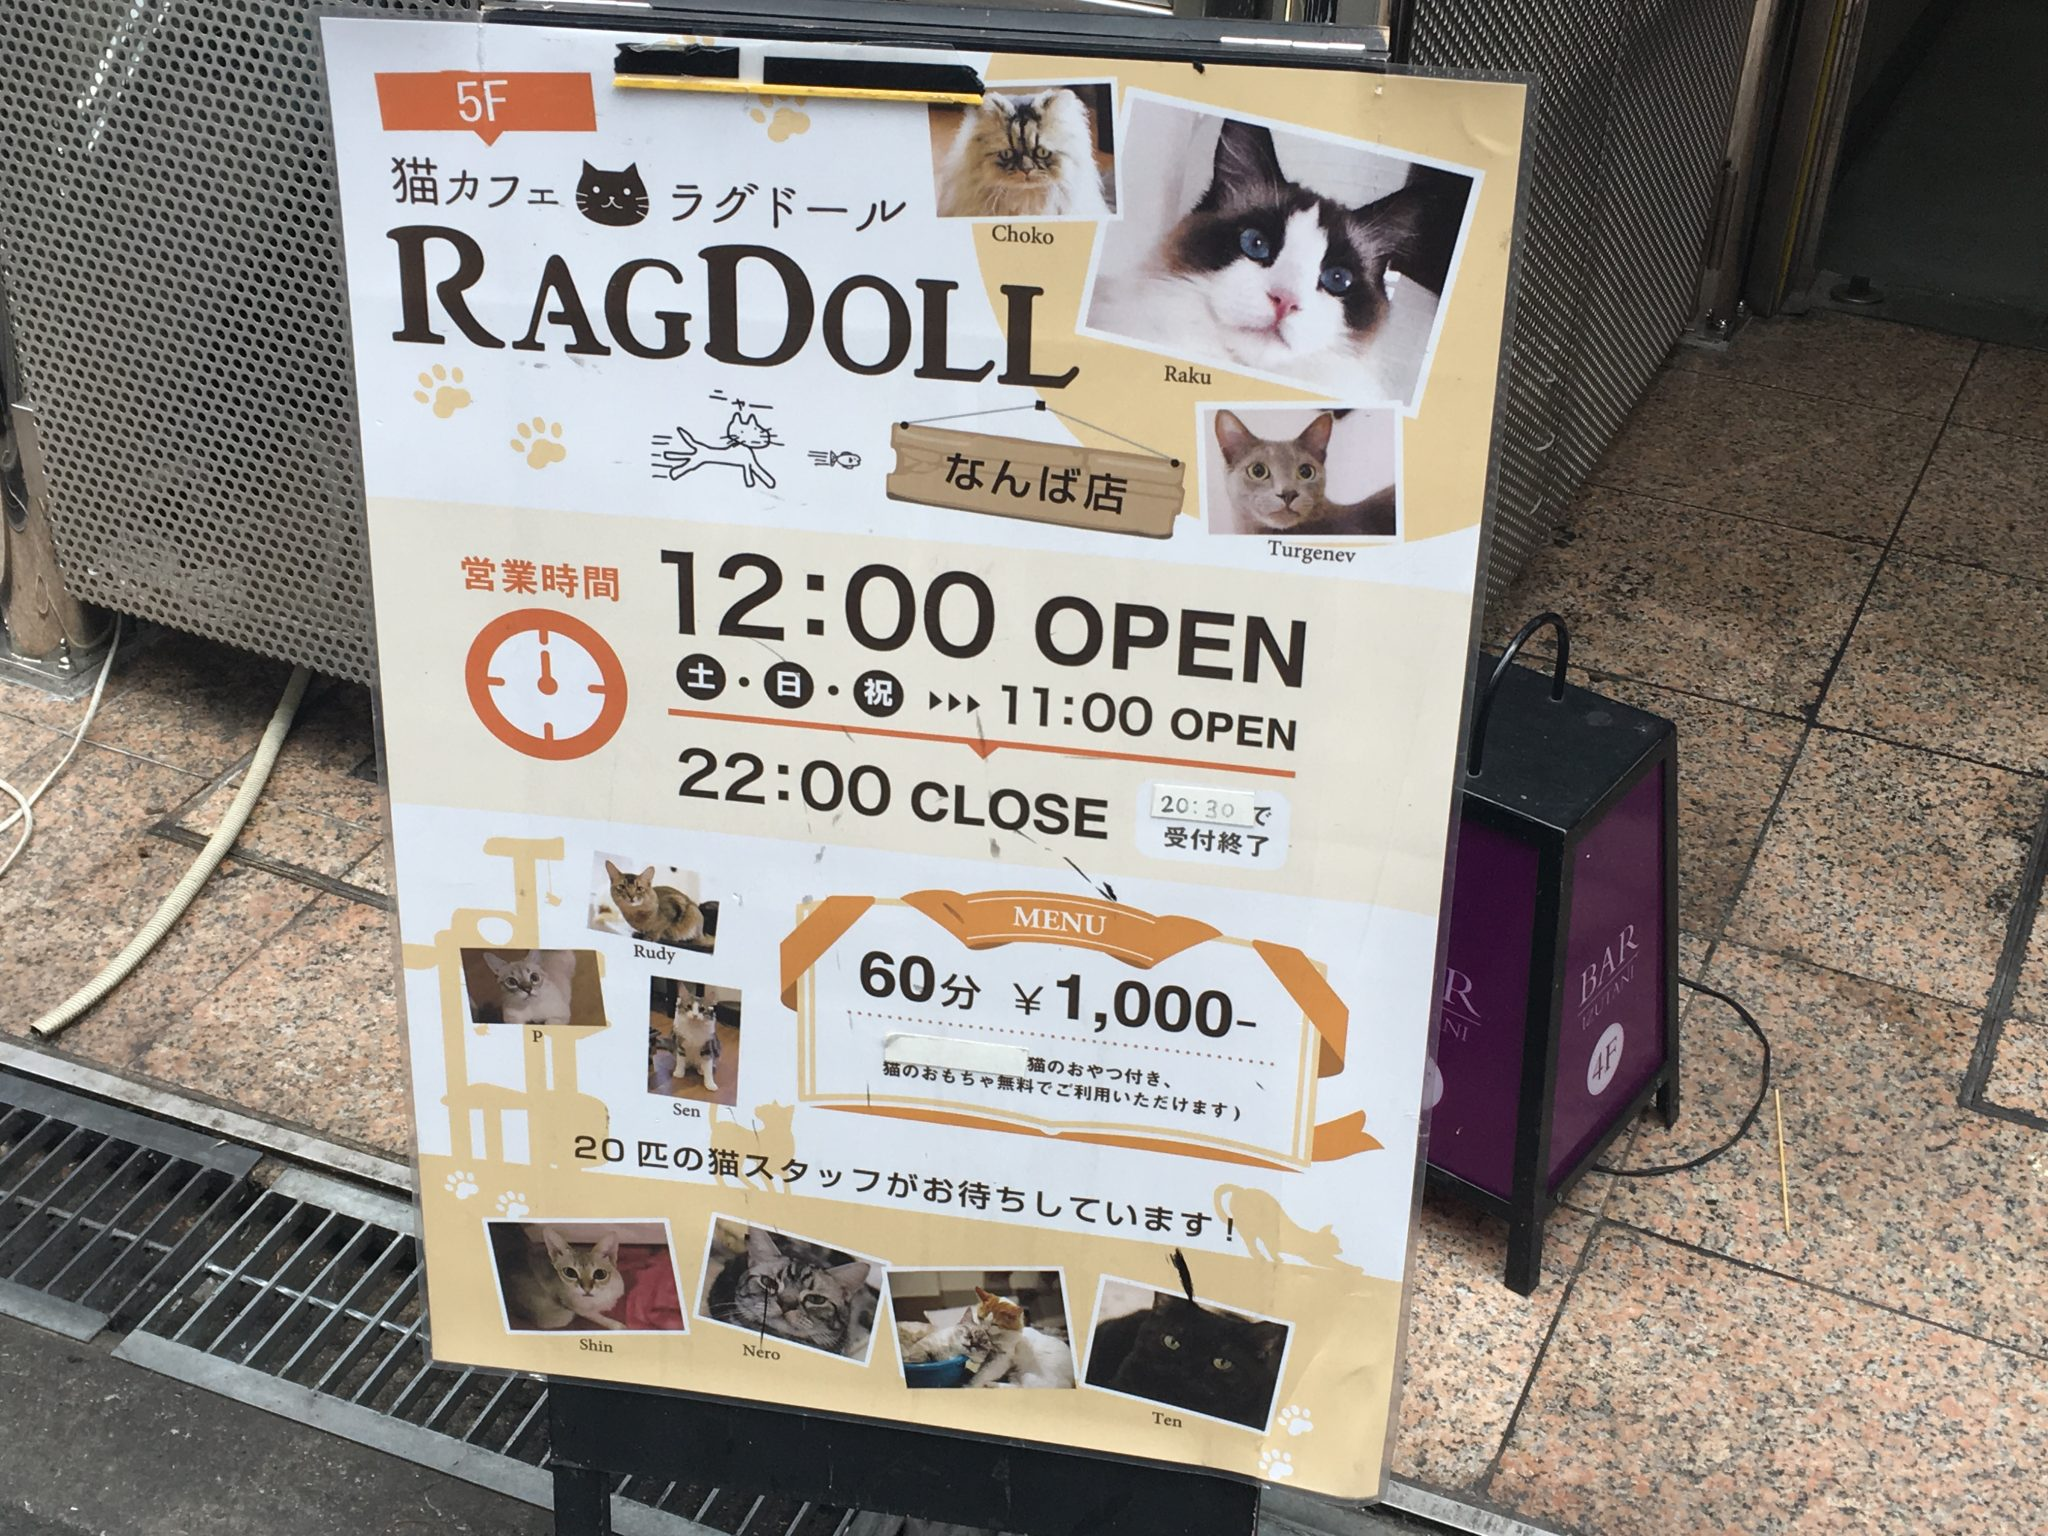 Neko cafe rag doll